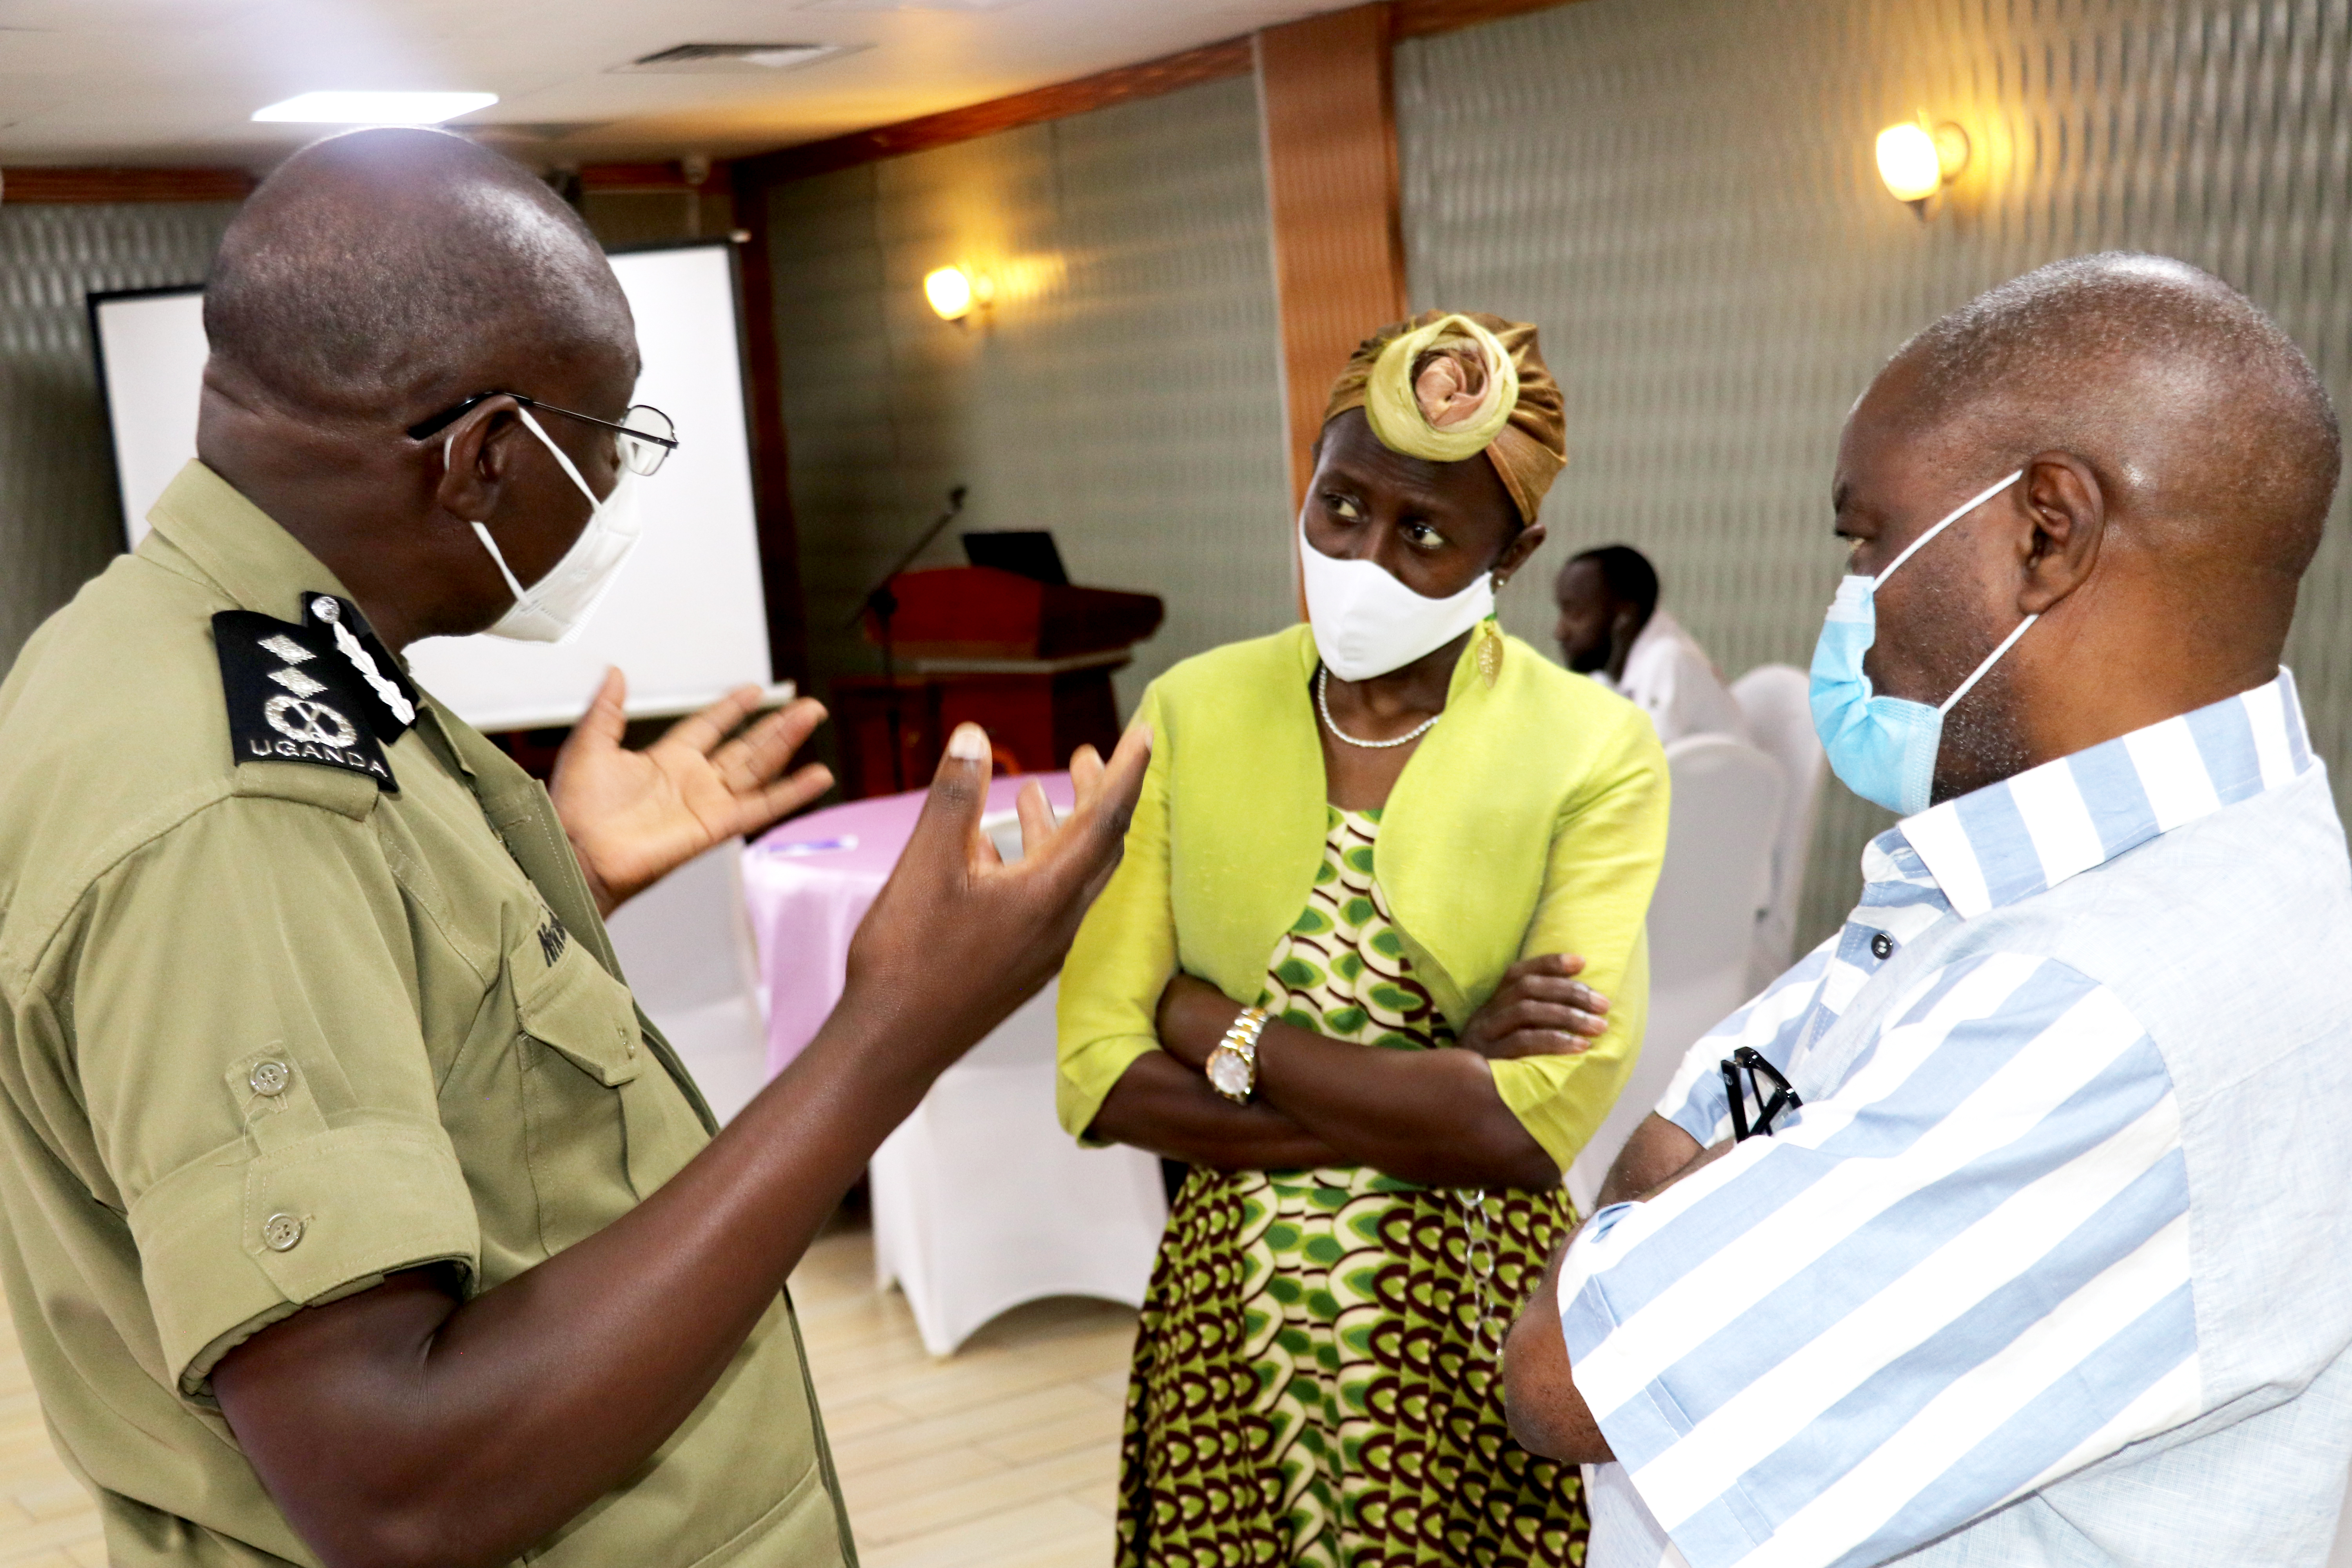 CP Niwabiine Lawrence, the acting Director Traffic and Road Safety in the Uganda Police Force engages Dr. Olive Kobusingye and media trainer Joachim Buwembo, from Uganda Radio Network.